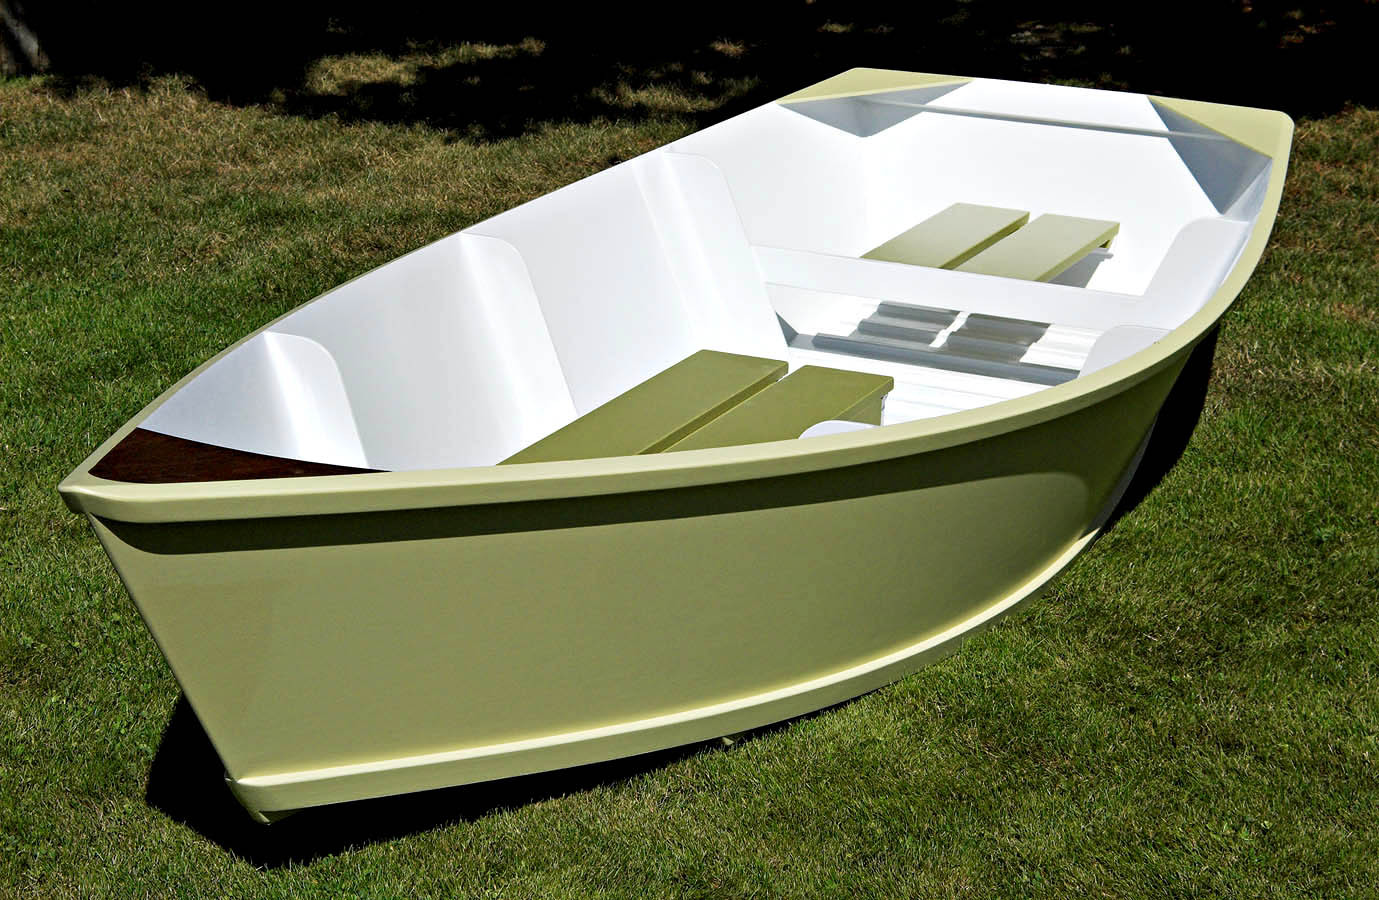 Best ideas about DIY Boat Plans . Save or Pin How To Build A Metal Flat Bottom Boat How To DIY Download Now.